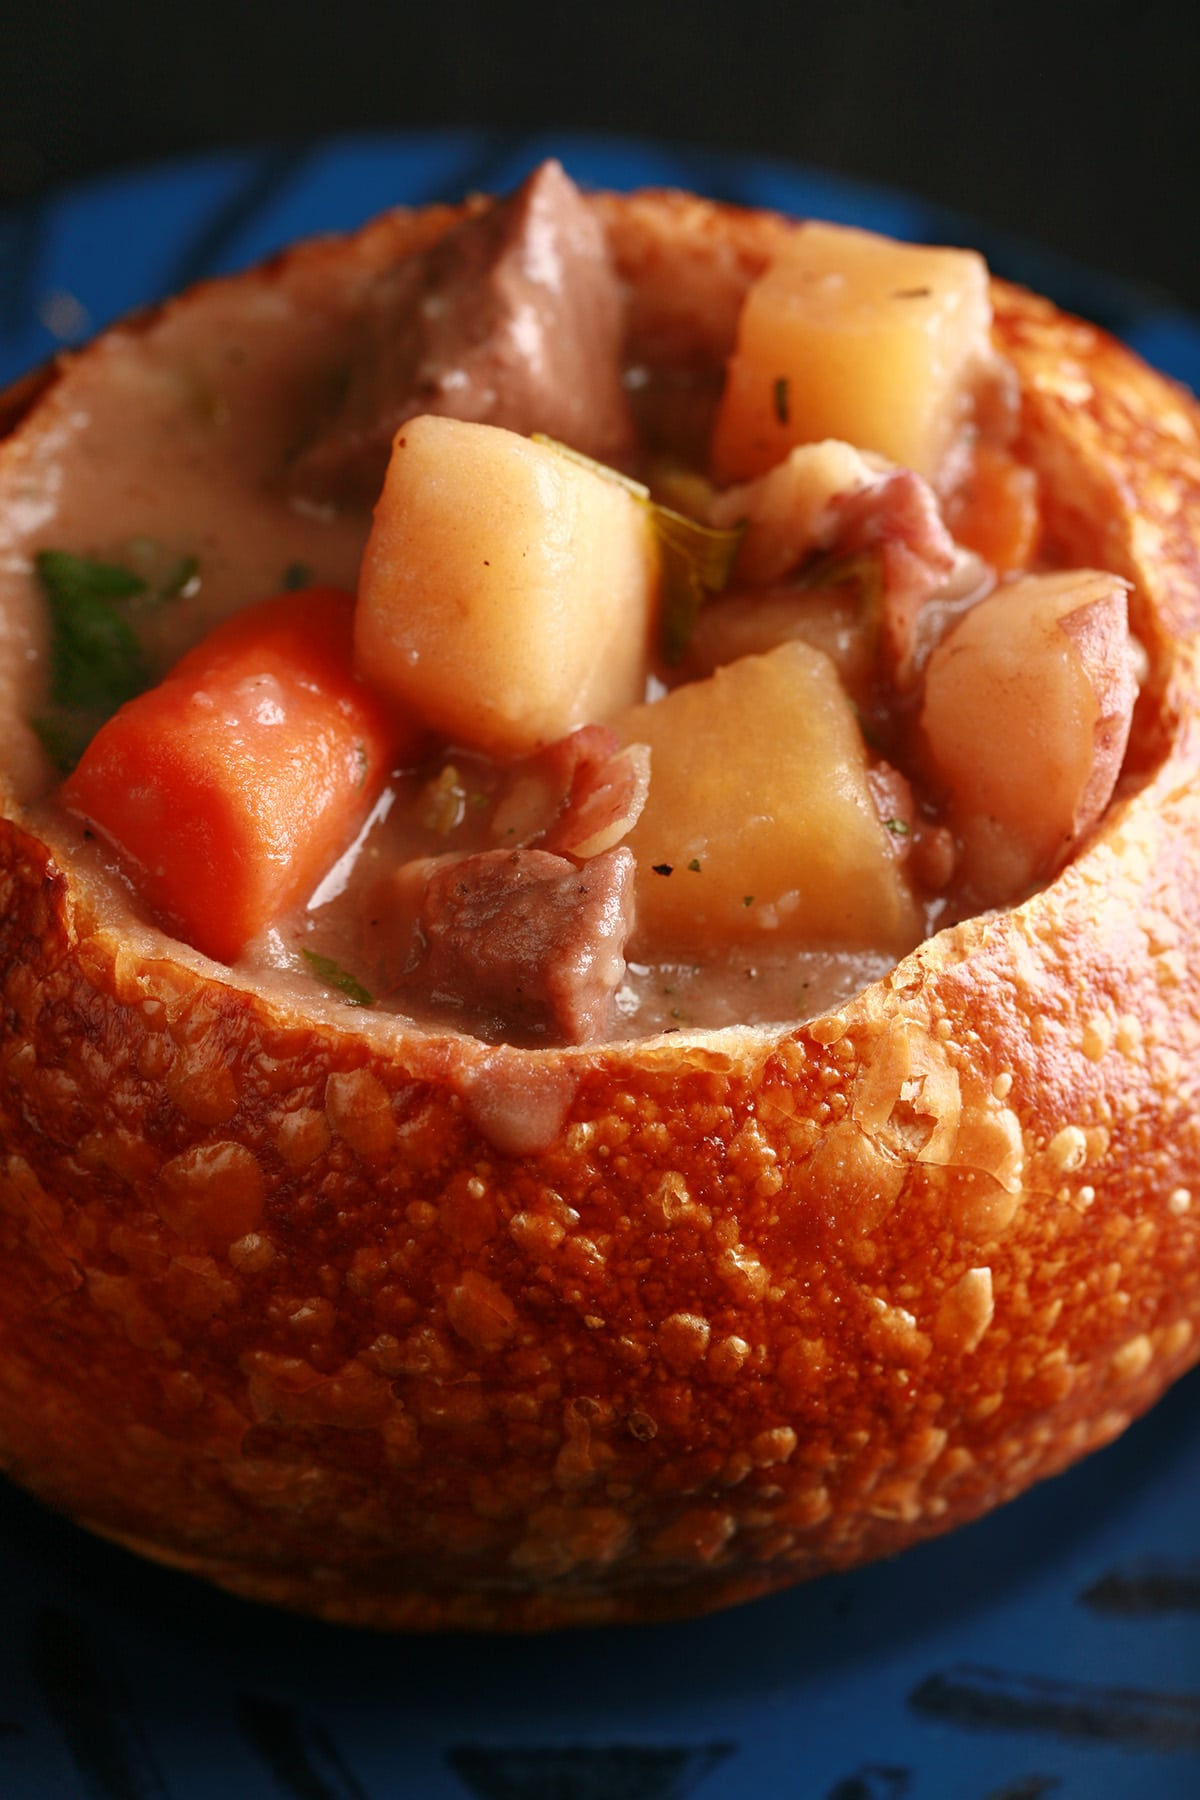 A bread bowl full of hearty beef stew. Chunks of beef, carrots, and potatoes are prominent.